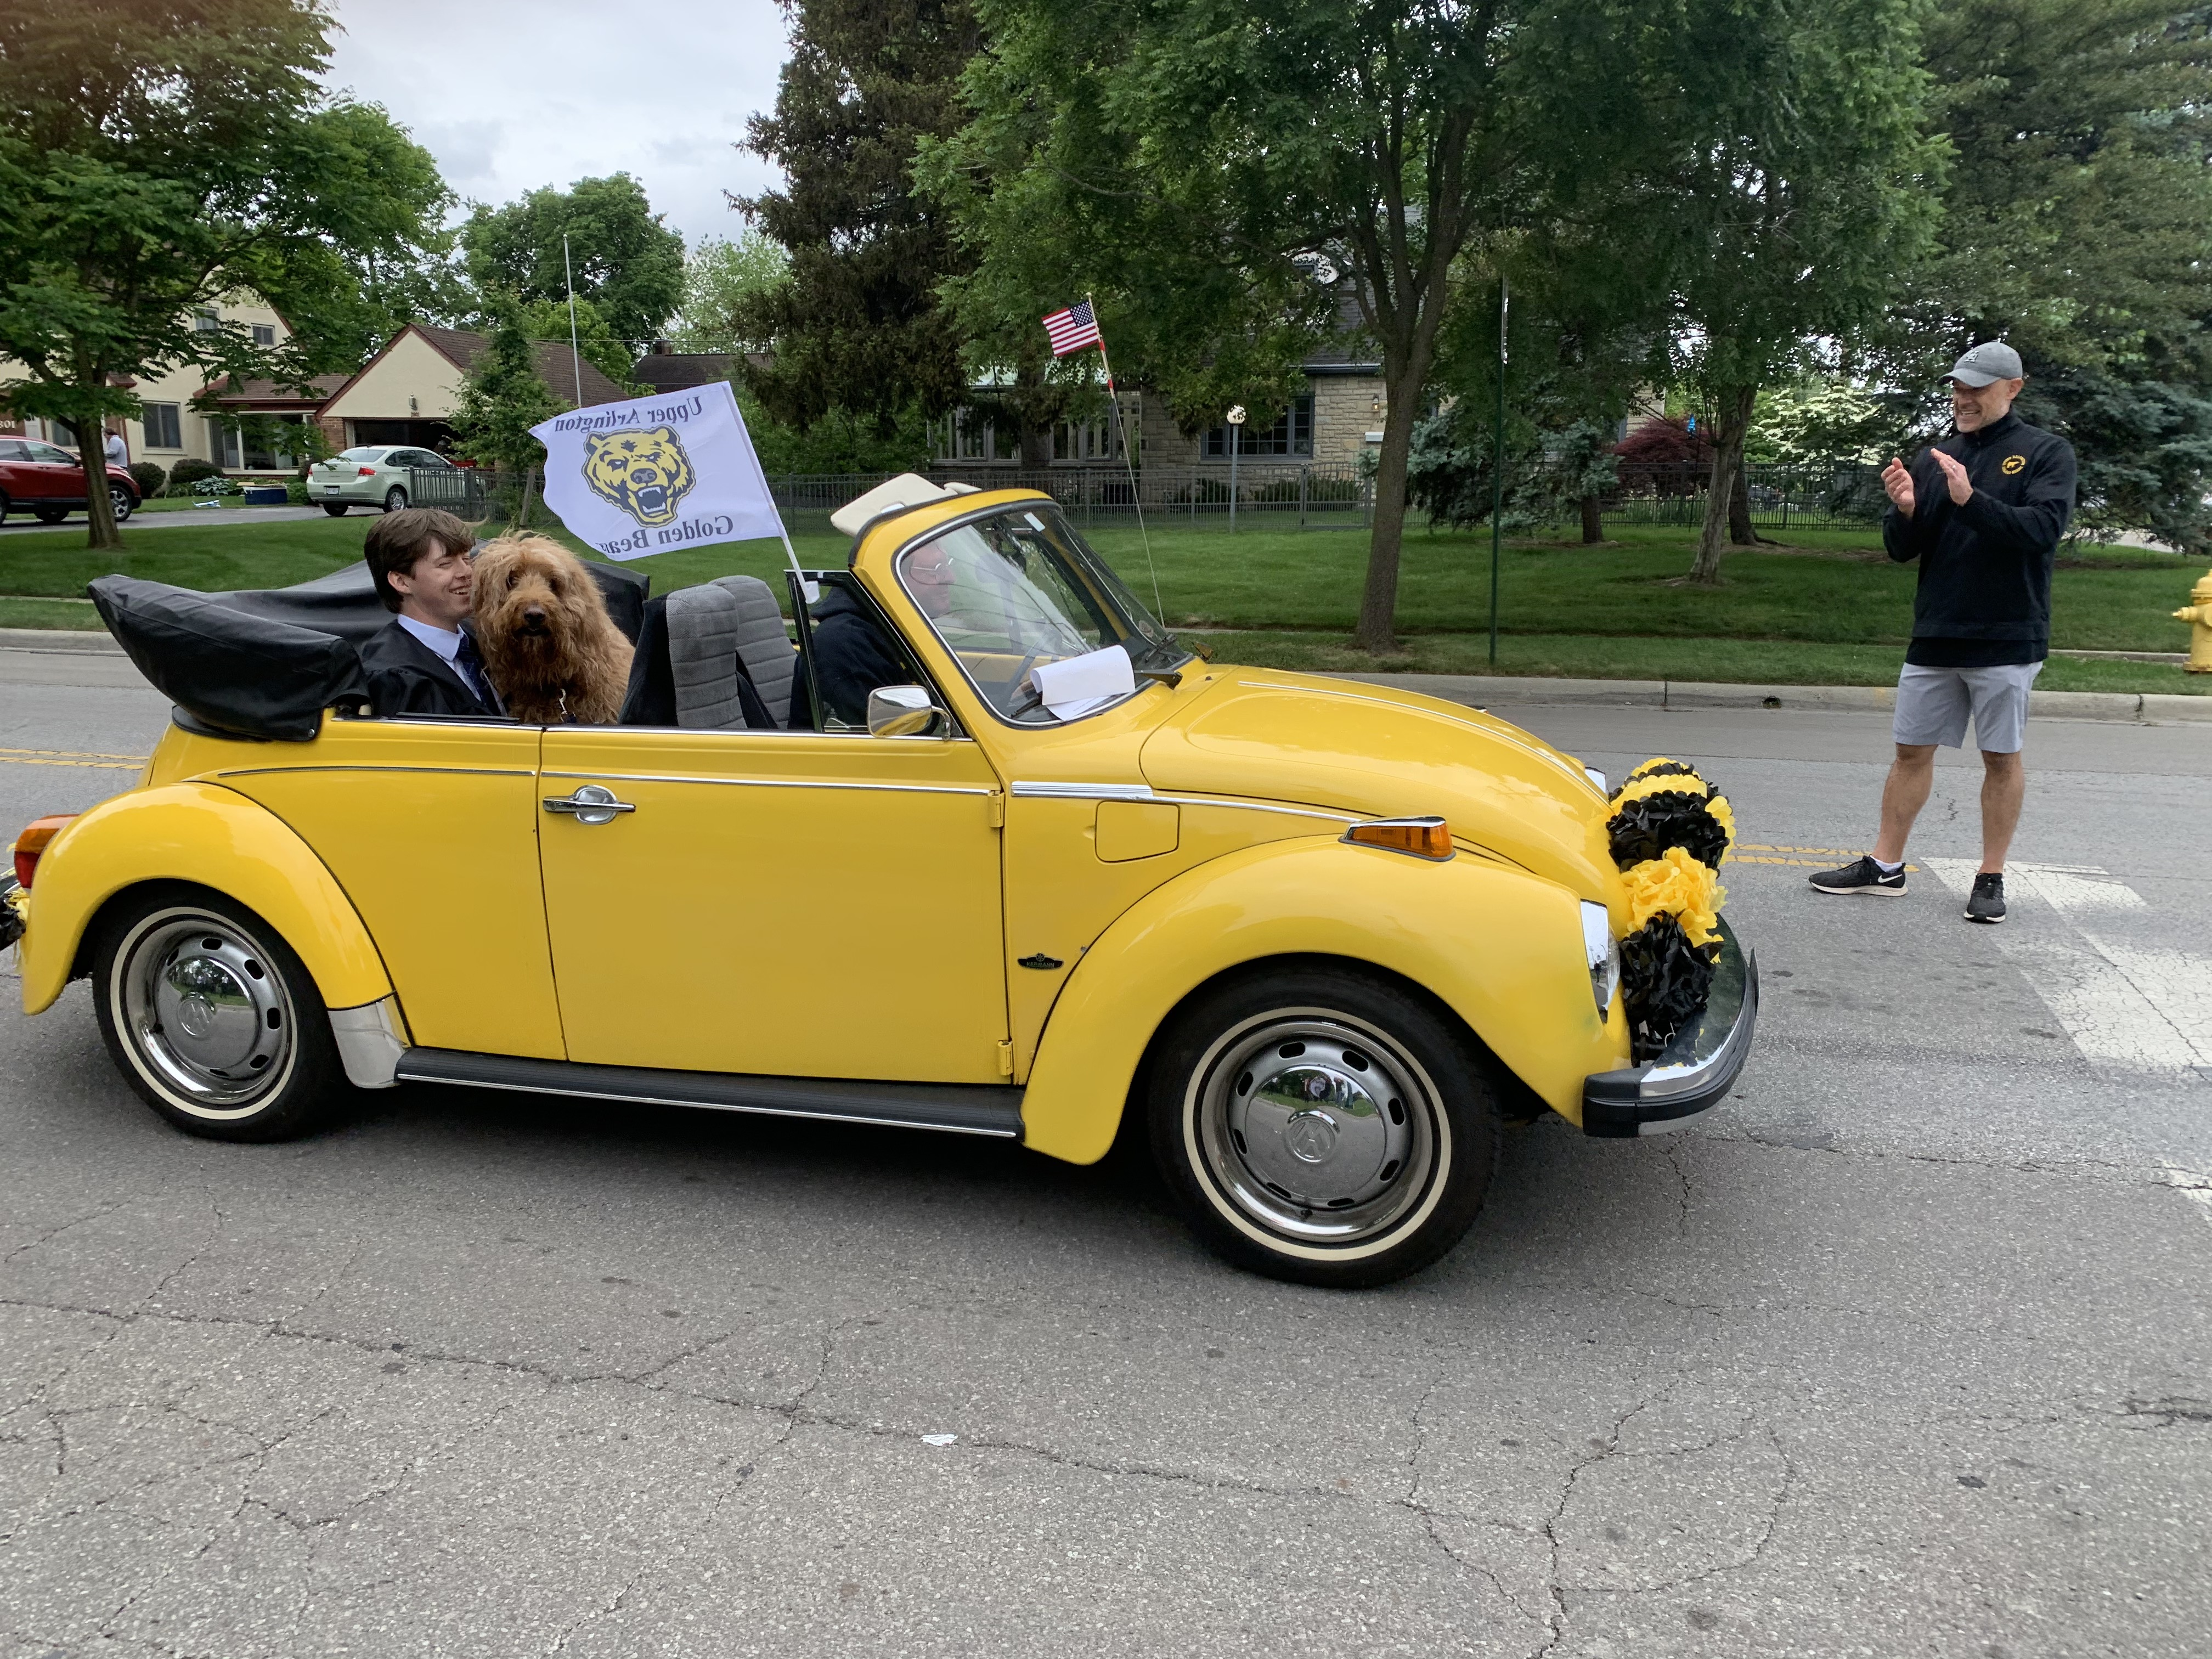 A graduate with his dog in the car parade